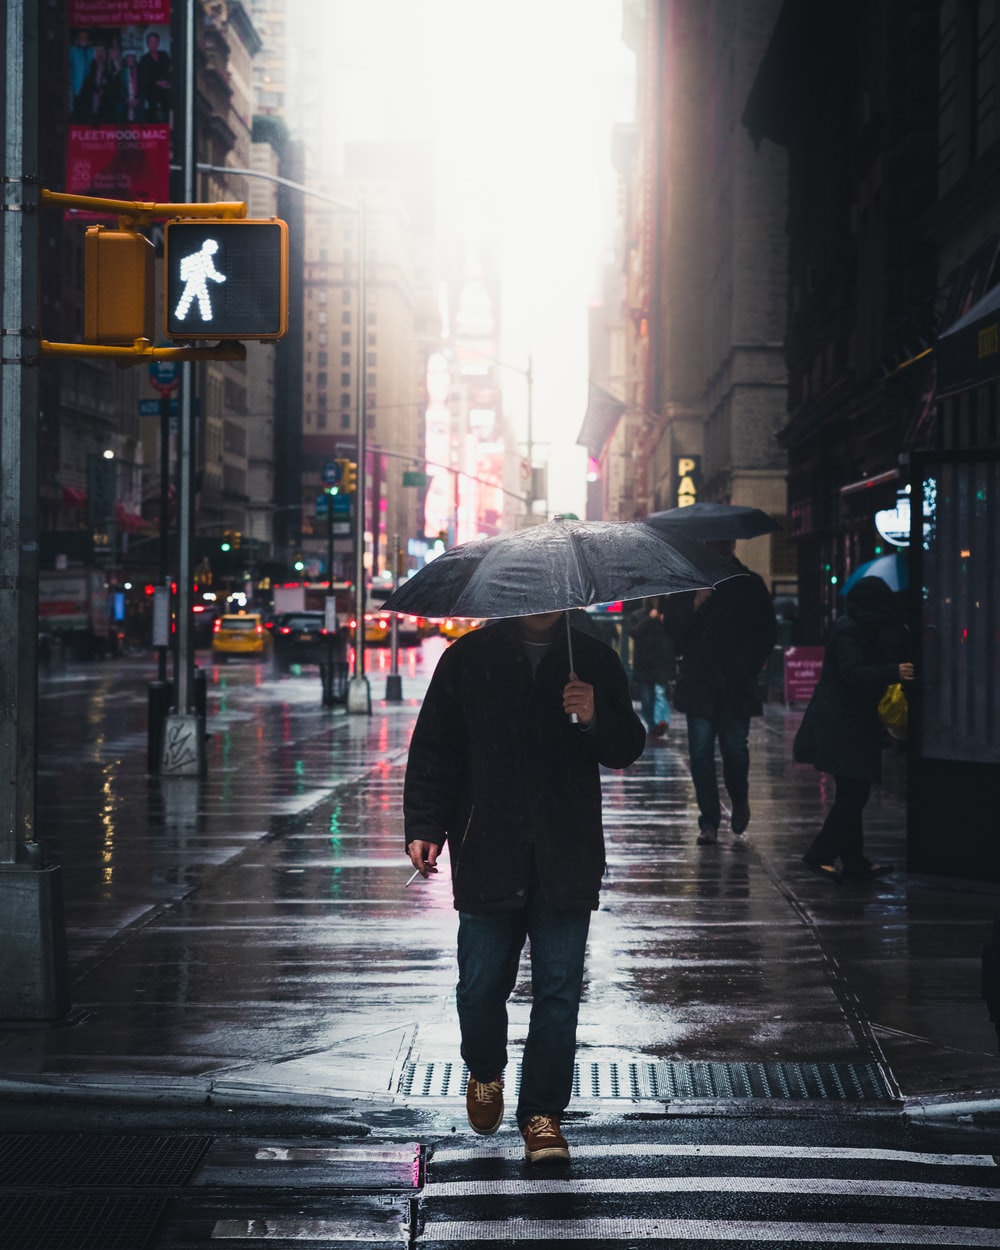 person walking on street during rainy day